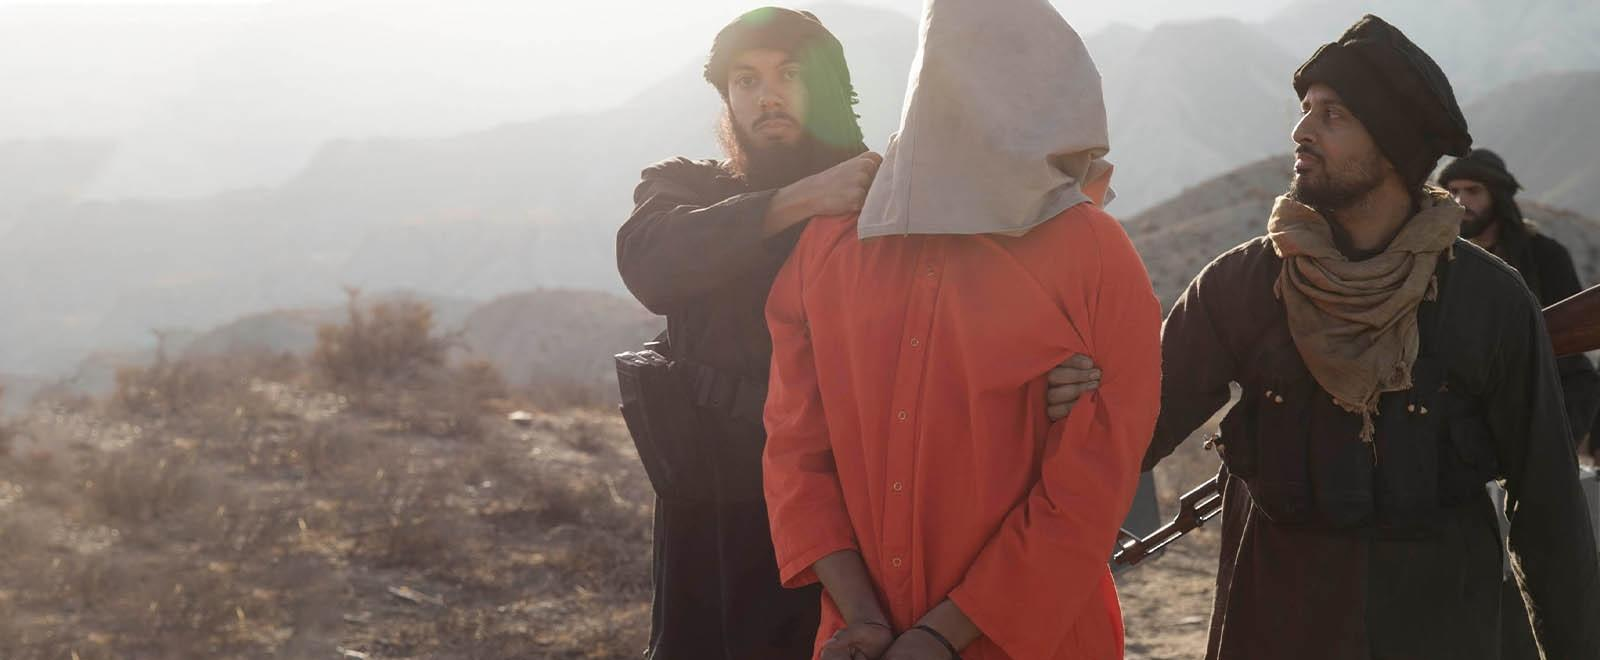 Isis: le reclute del male